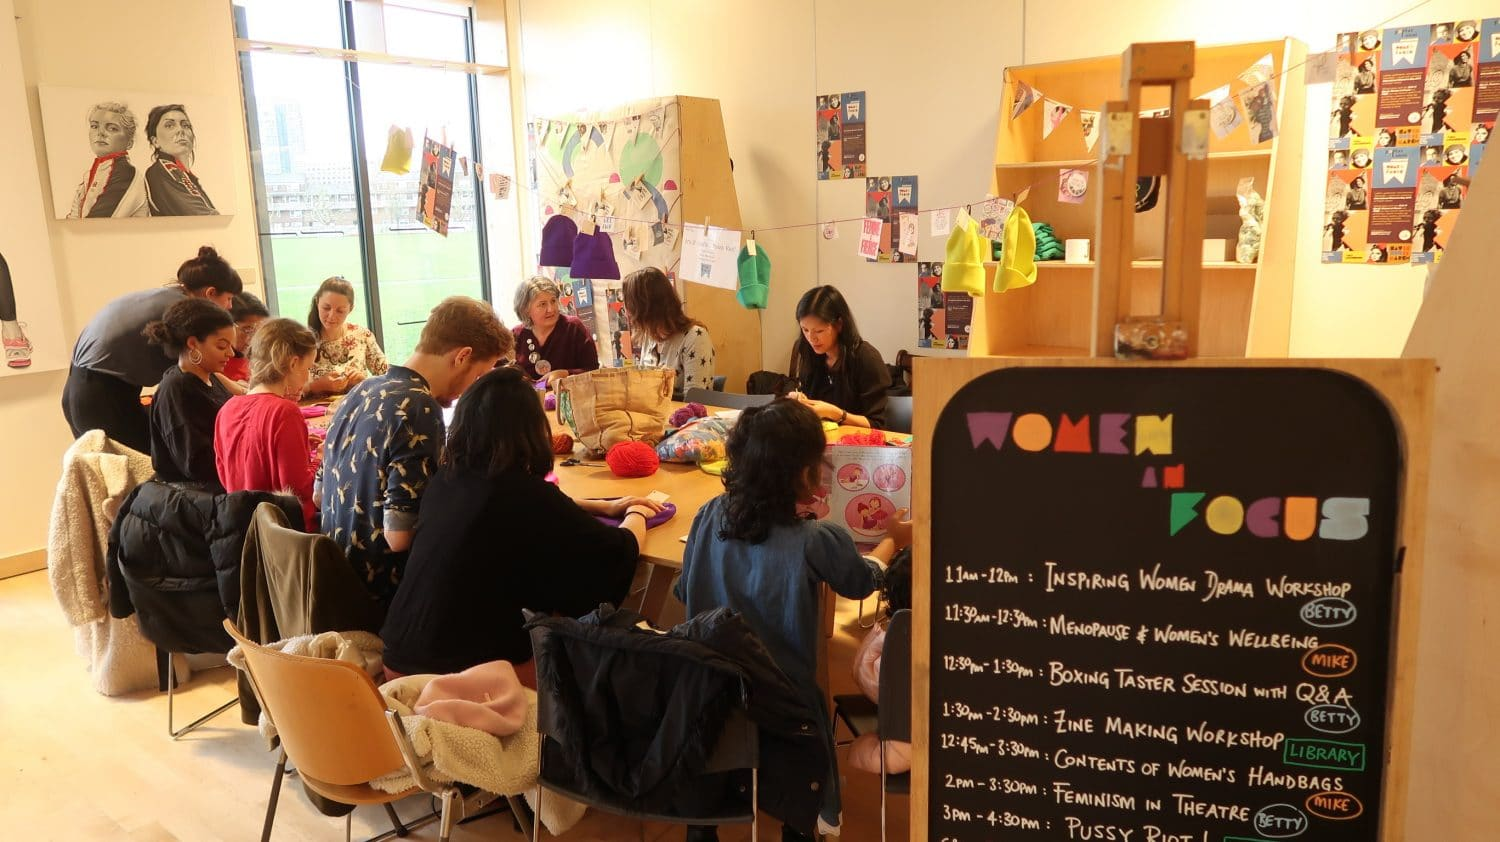 Poplar Union, Women in Focus Festival 2018, art centre, east London, your visit, Poplar, arts and crafts